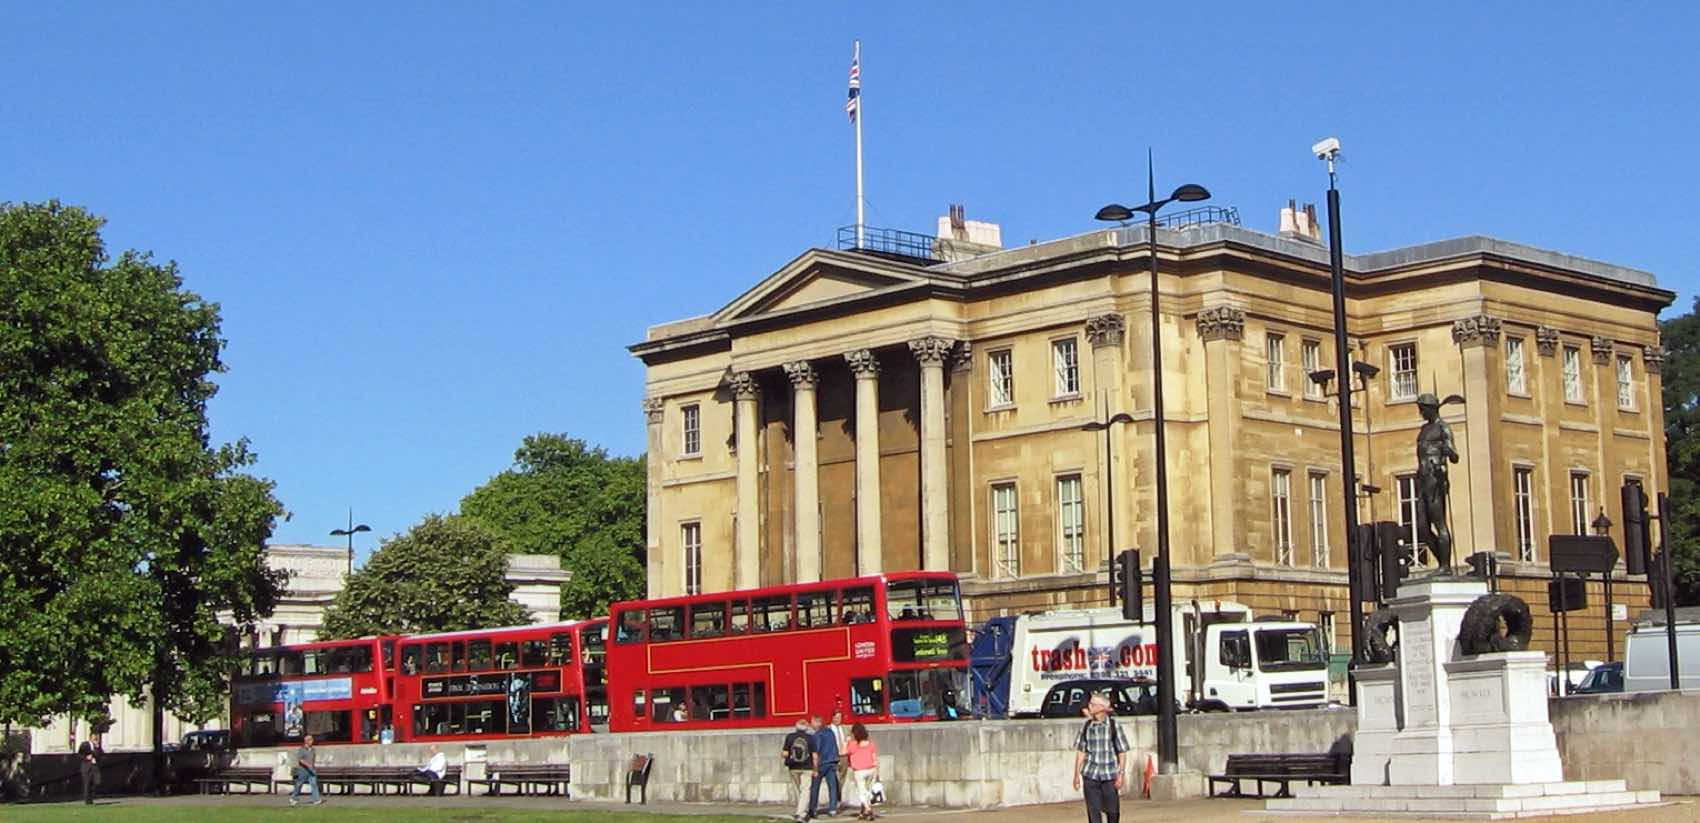 Central London; Apsley House and Wellington Museum